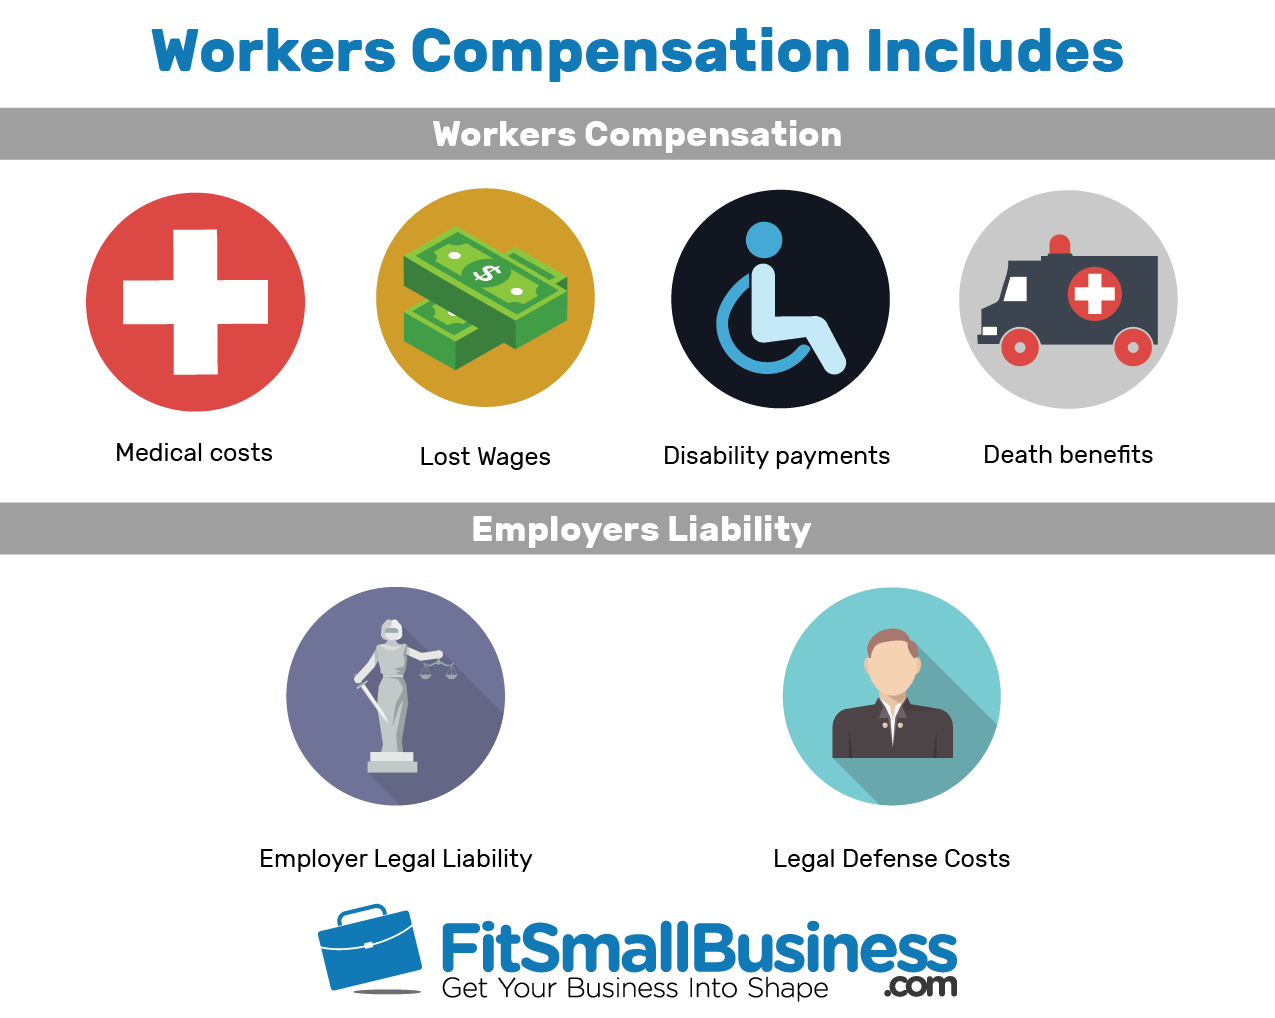 infographic about workers compensation and employers liability